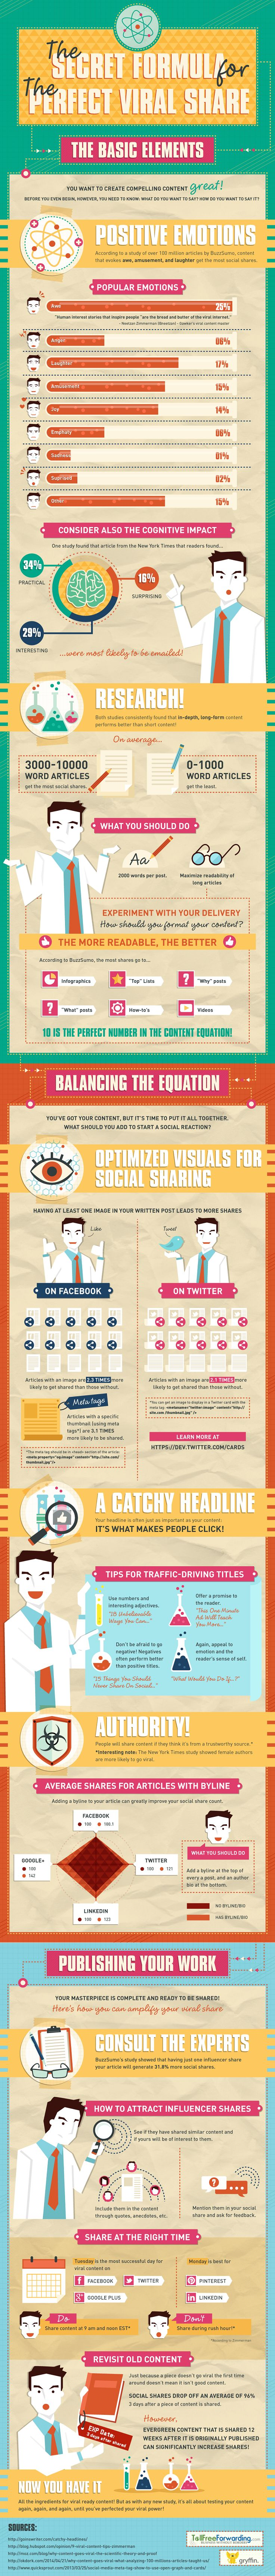 The Rocket Science of Viral #SocialMedia Post - #infographic #contentmarketing